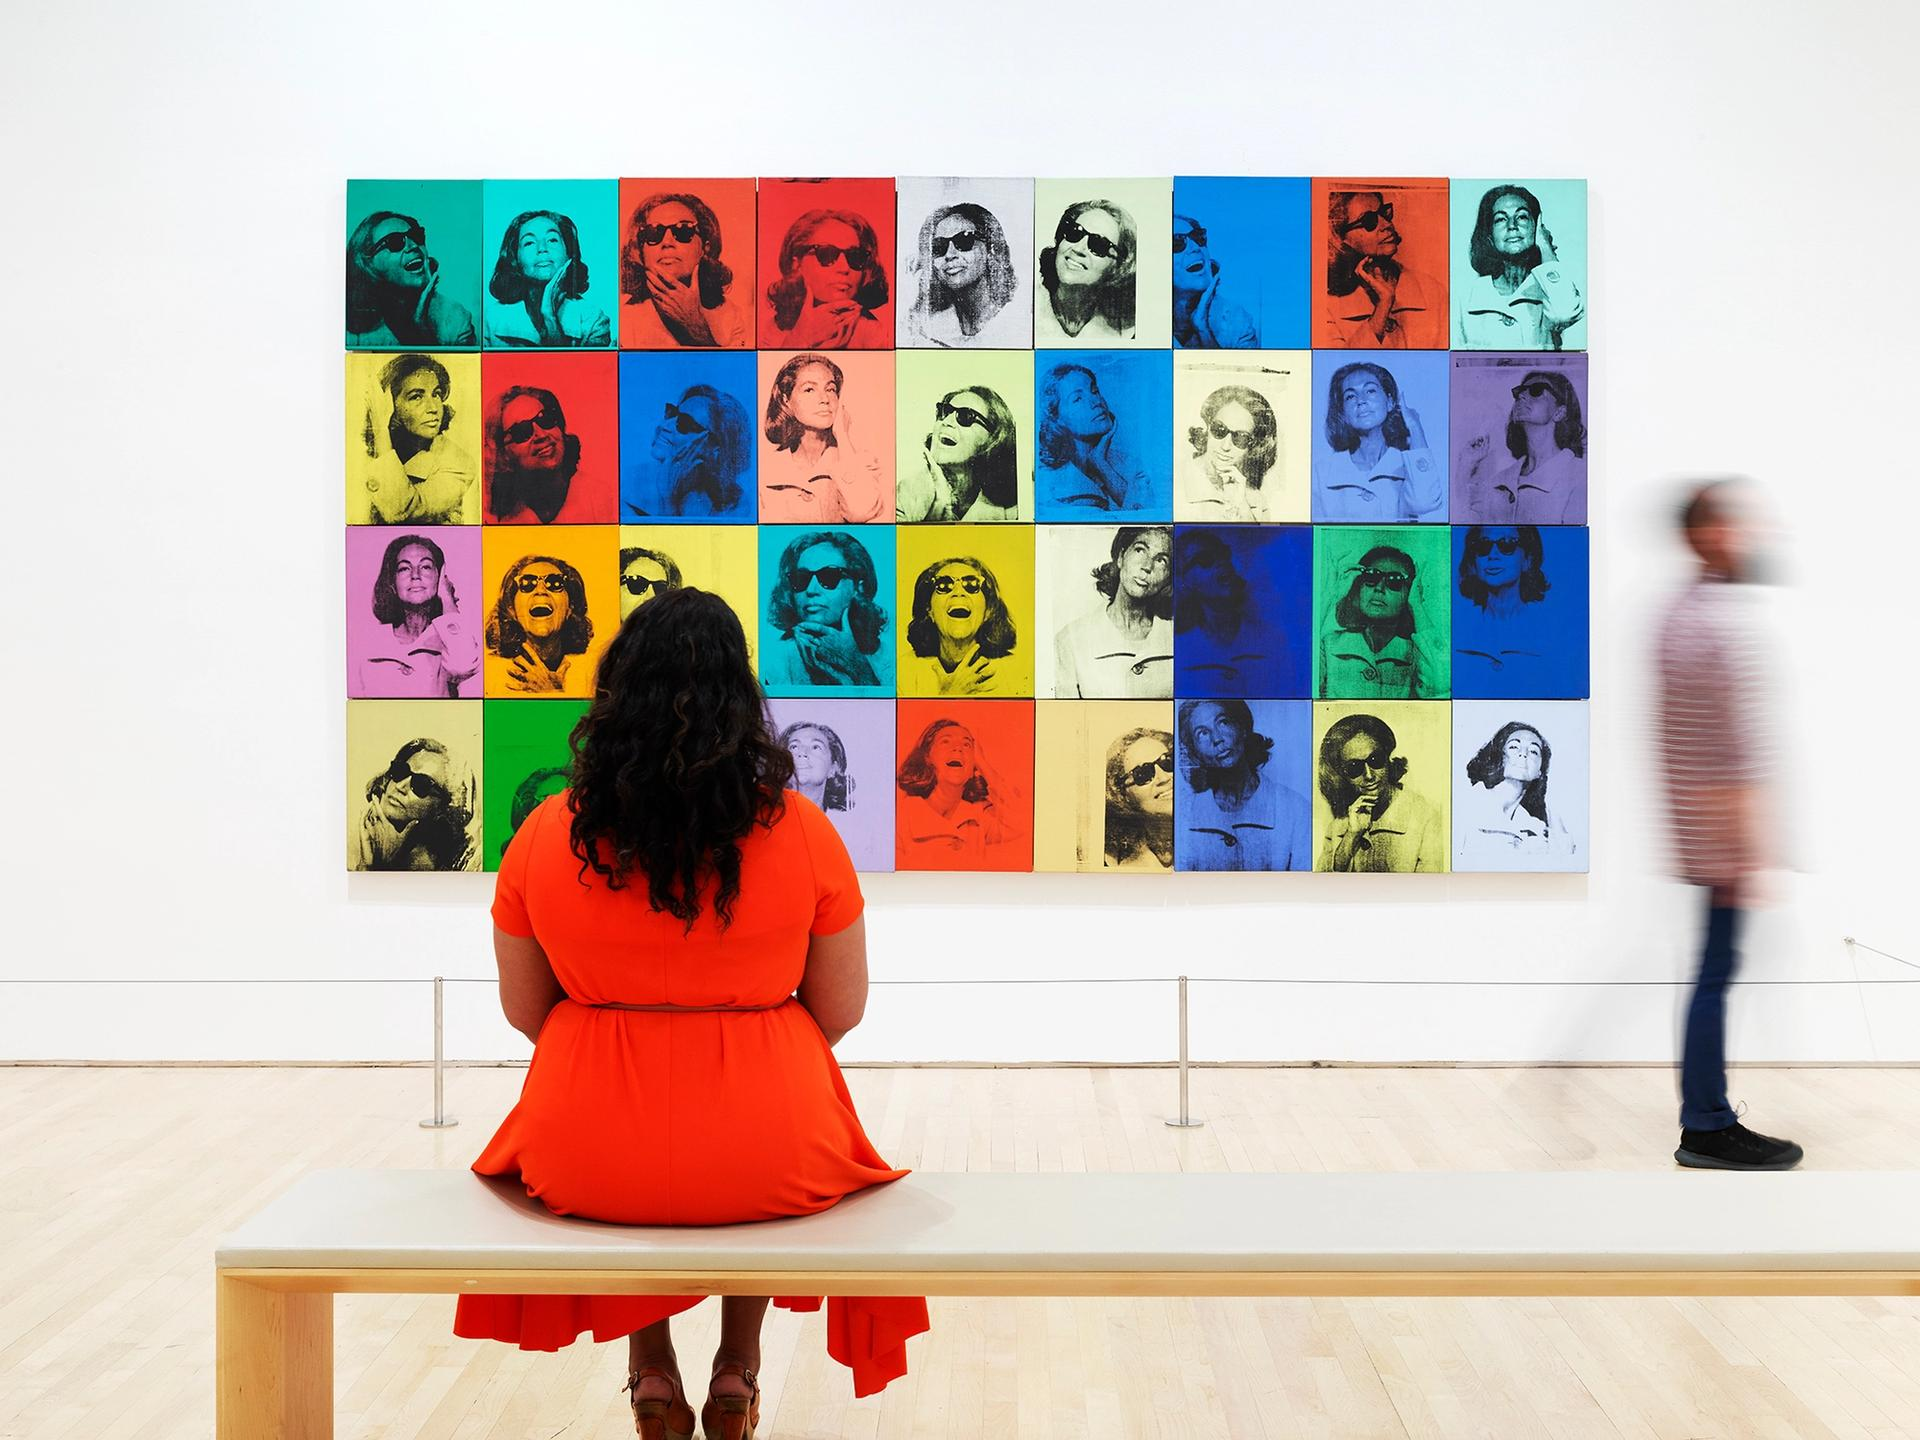 An installation view of Andy Warhol—From A to B and Back Again (2019) at SFMoMA © The Andy Warhol Foundation for the Visual Arts, Inc. / Artists Rights Society (ARS) New York. Photo: © Matthew Millman Photography